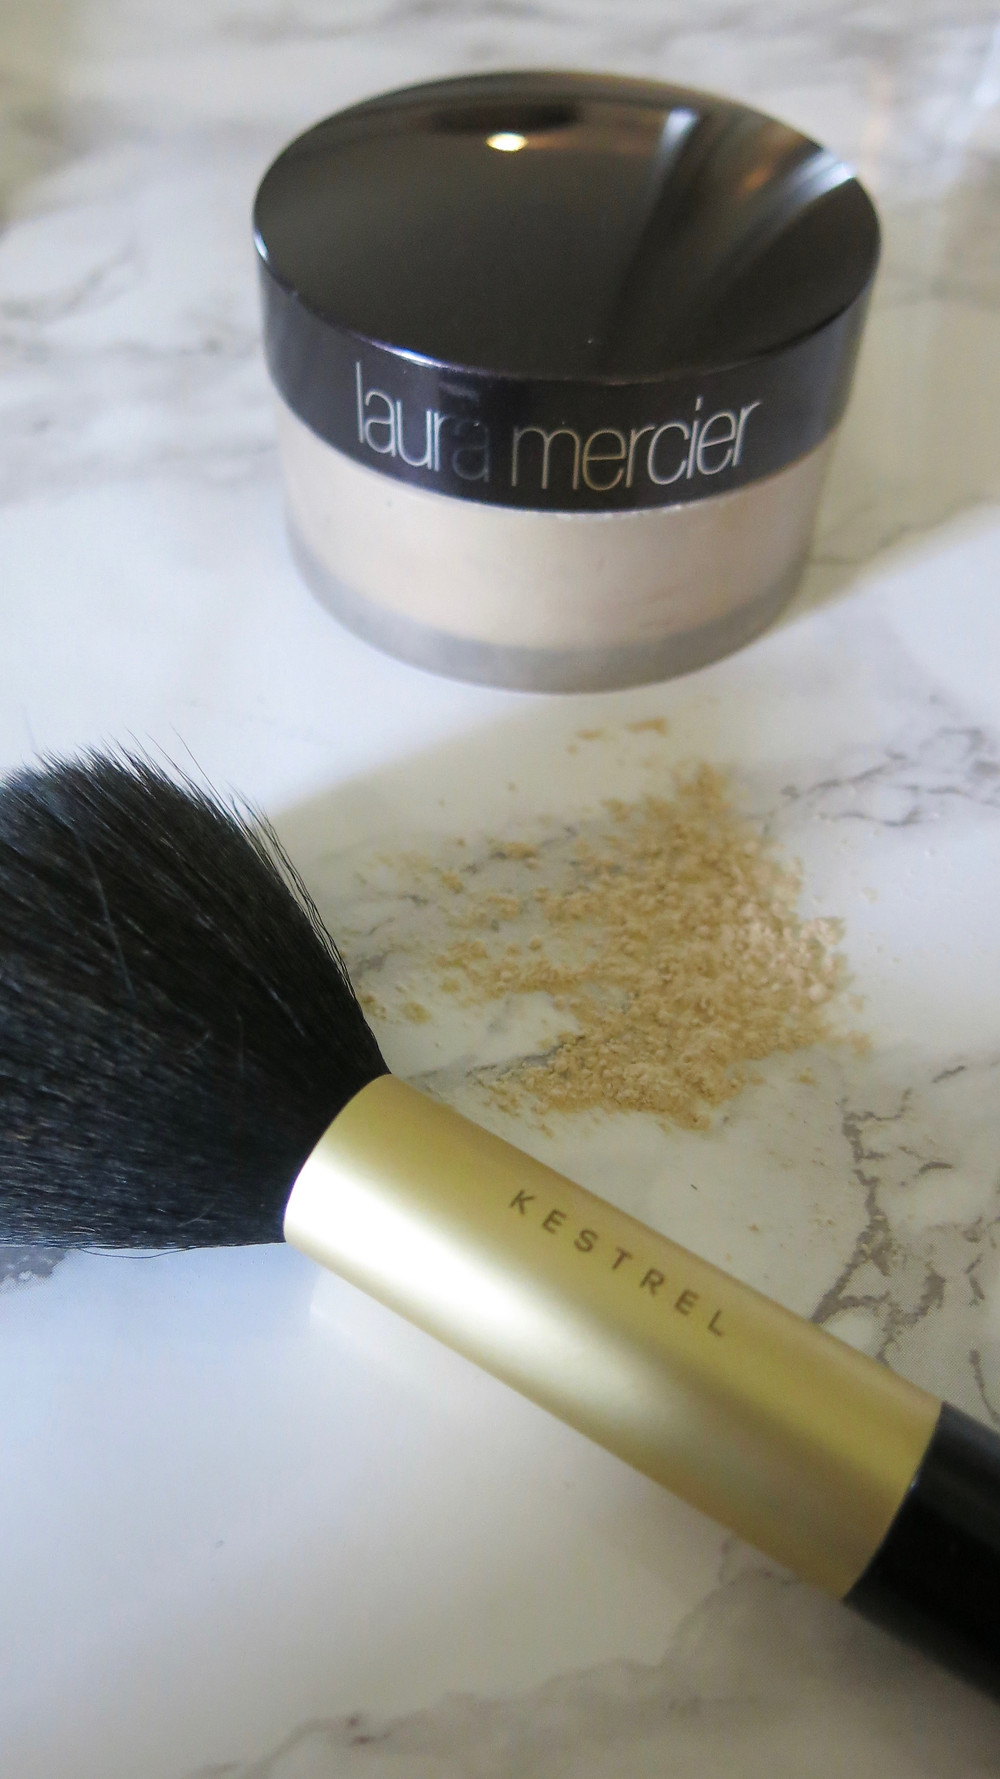 summer makeup, makeup, makeup tips, beauty, makeup tips, Liv's Lookbook, Laura Mercier